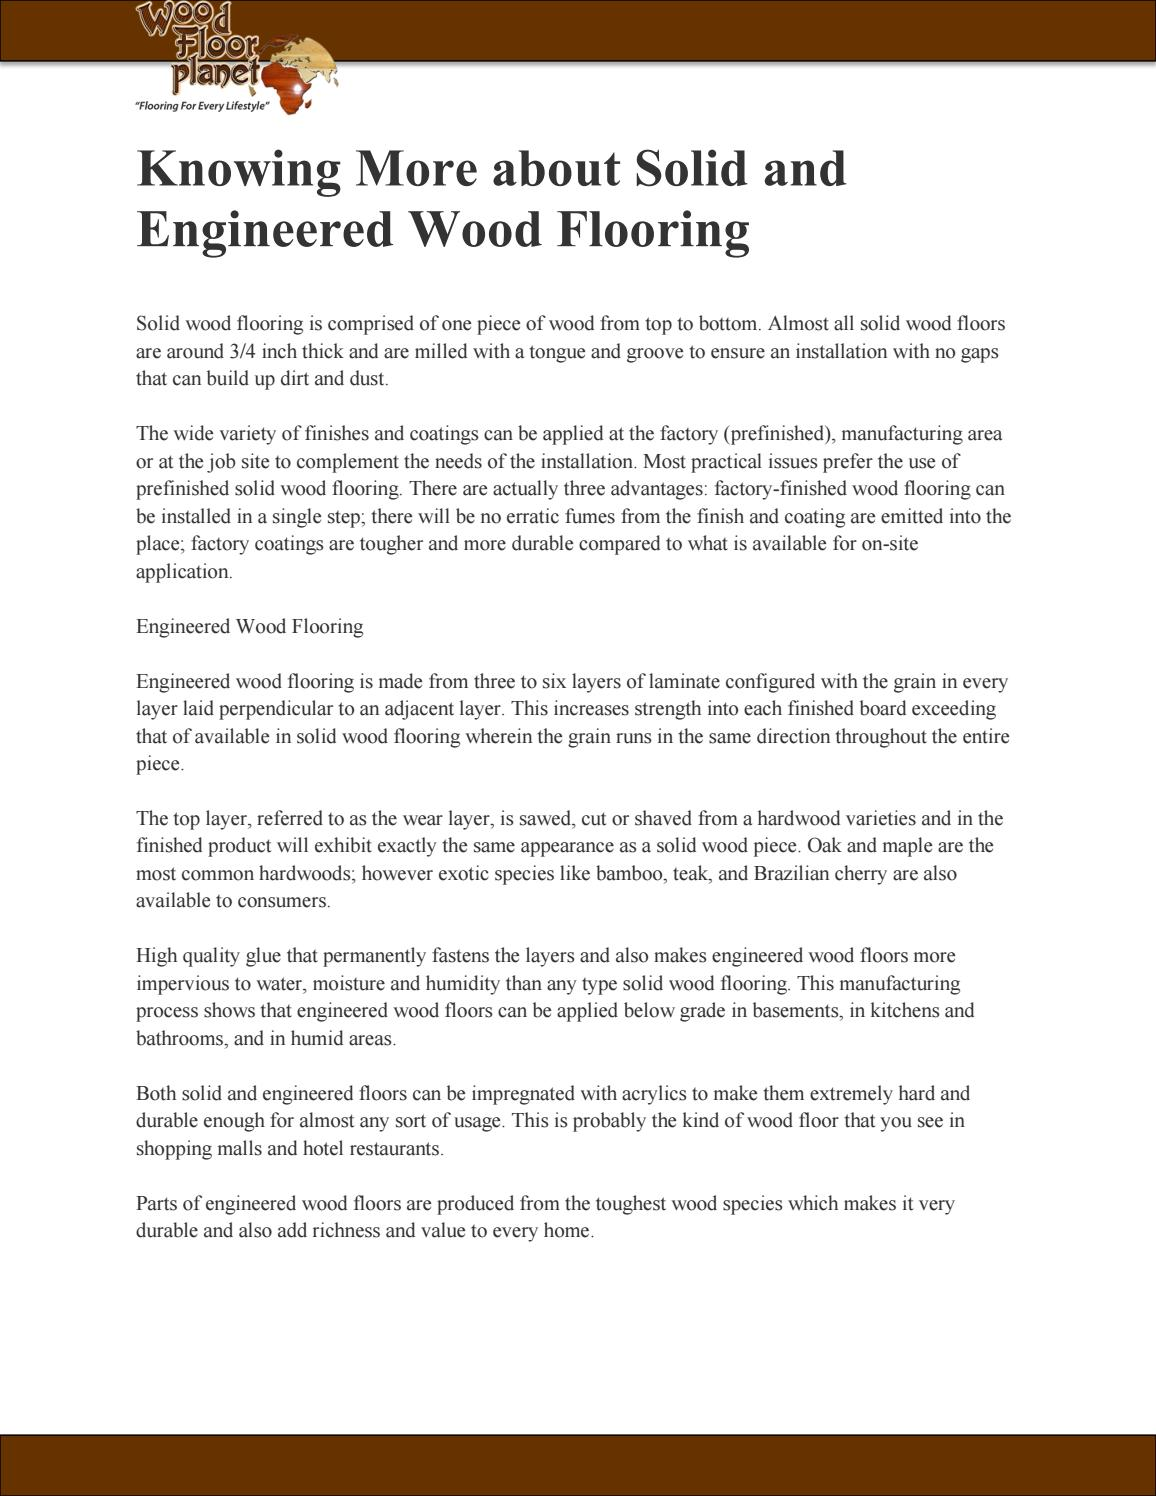 Knowing More About Solid And Engineered Wood Flooring By Woodlylinksu Issuu